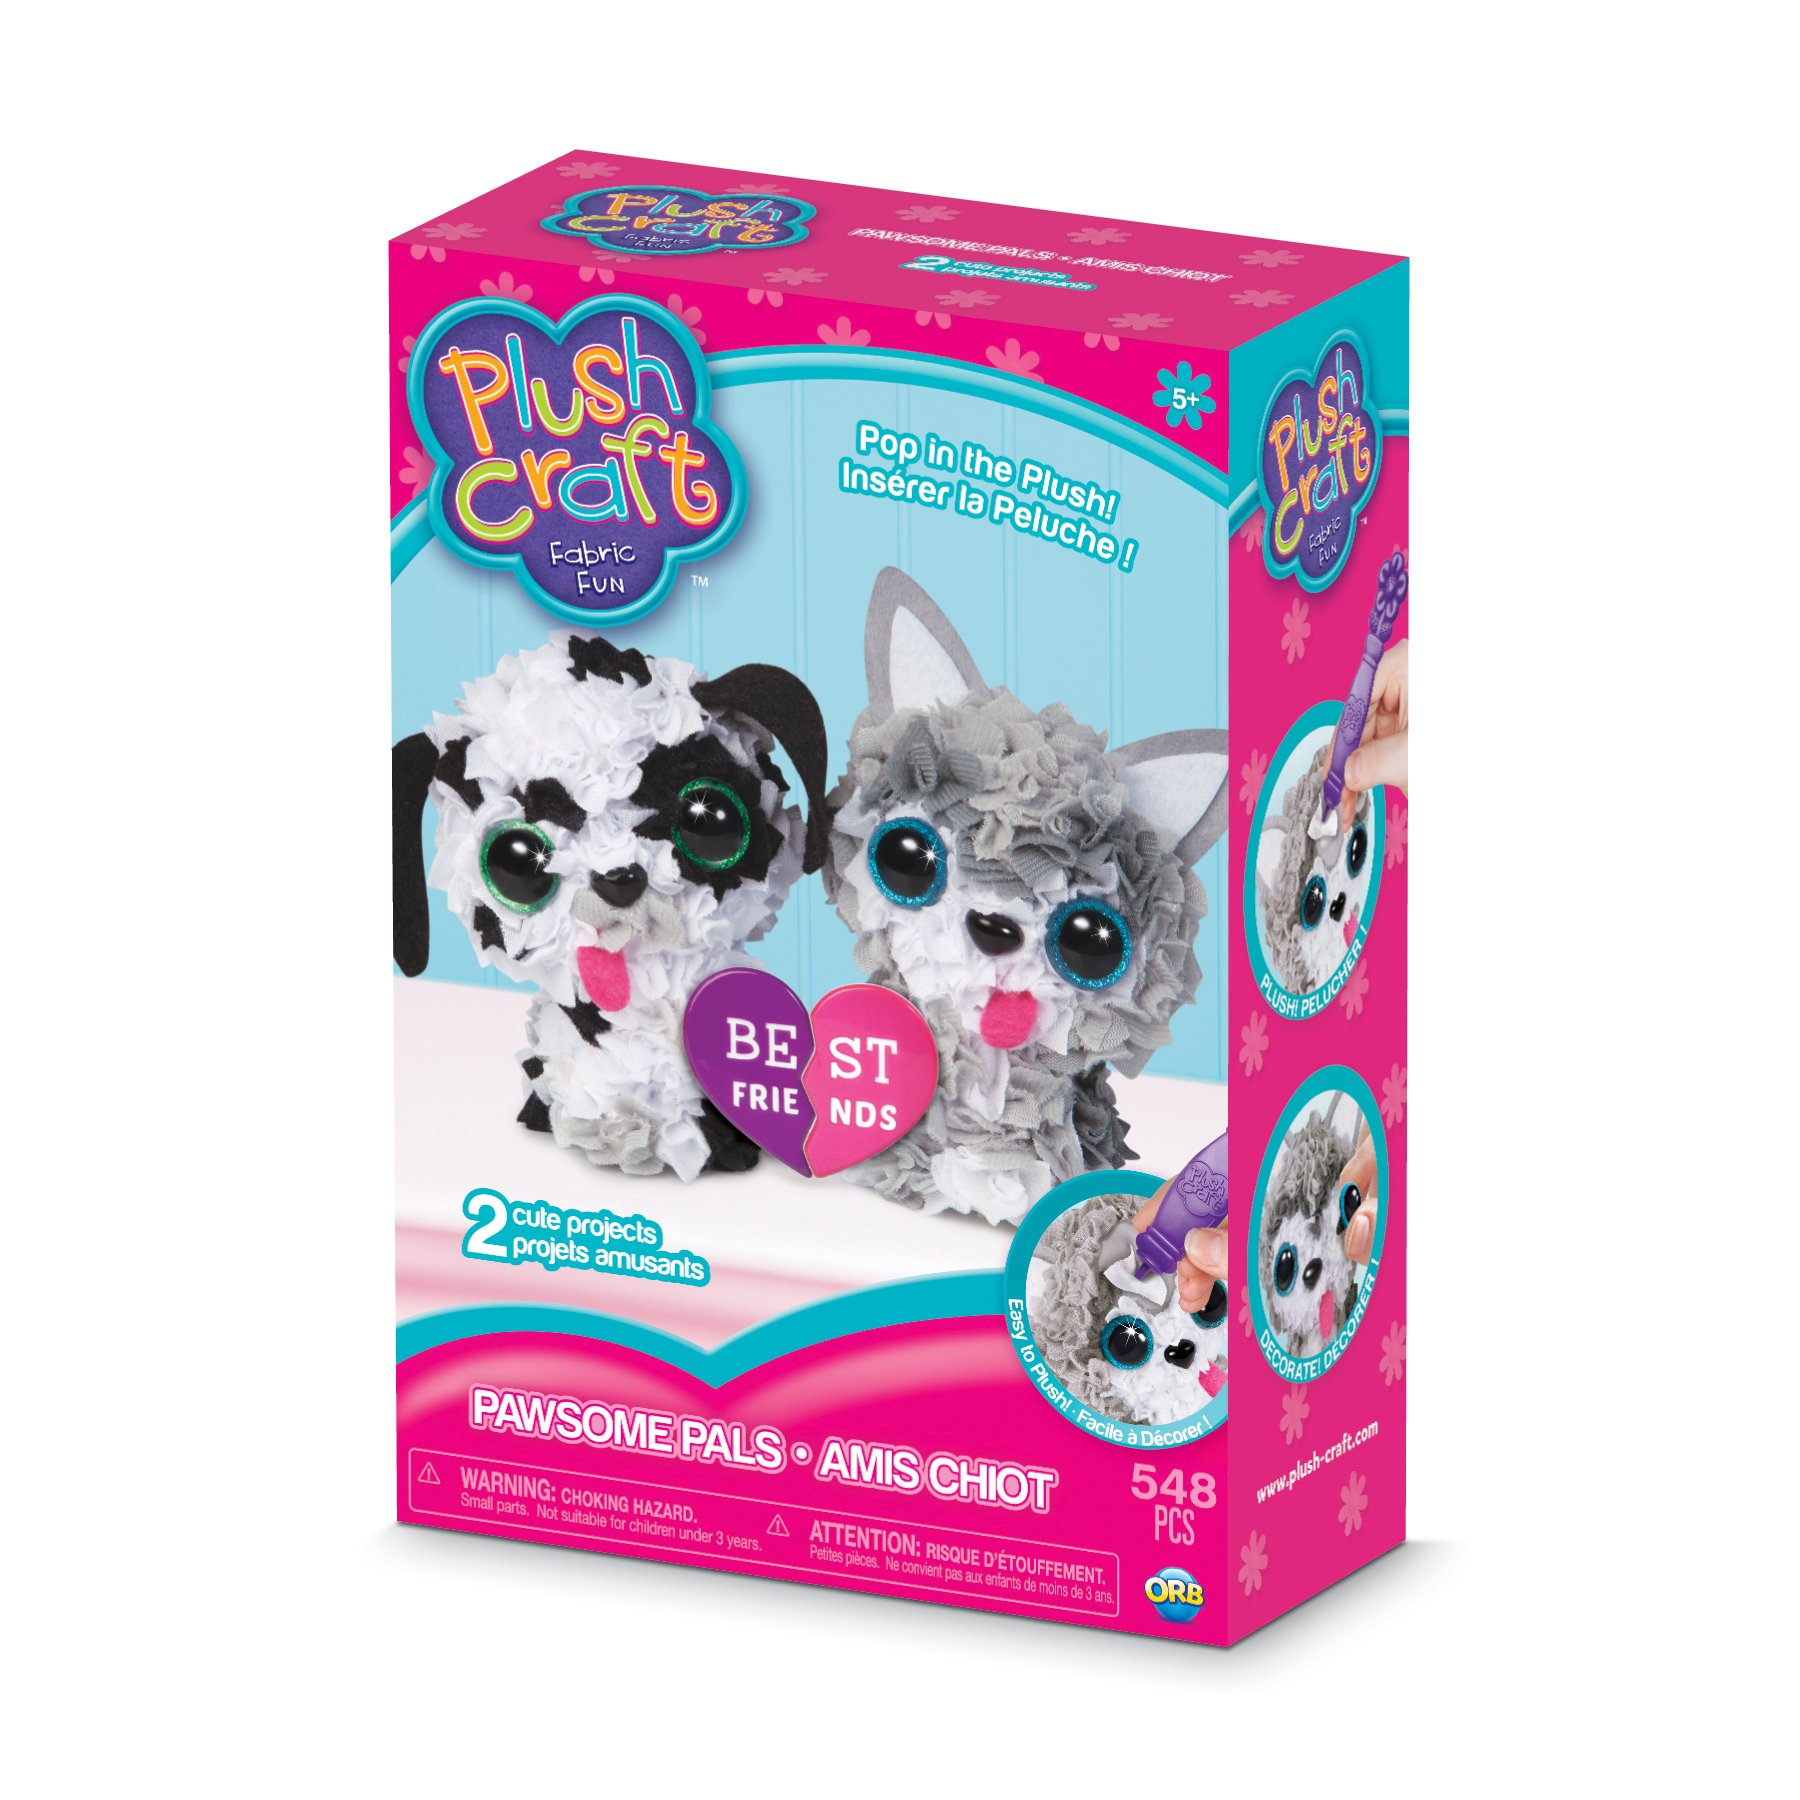 THE ORB FACTORY LIMITED 10027967 Plush Craft 3D Paw Some Pals Set, 10'' x 3'' x 8.5'', Grey/White/Black/Pink by THE ORB FACTORY LIMITED